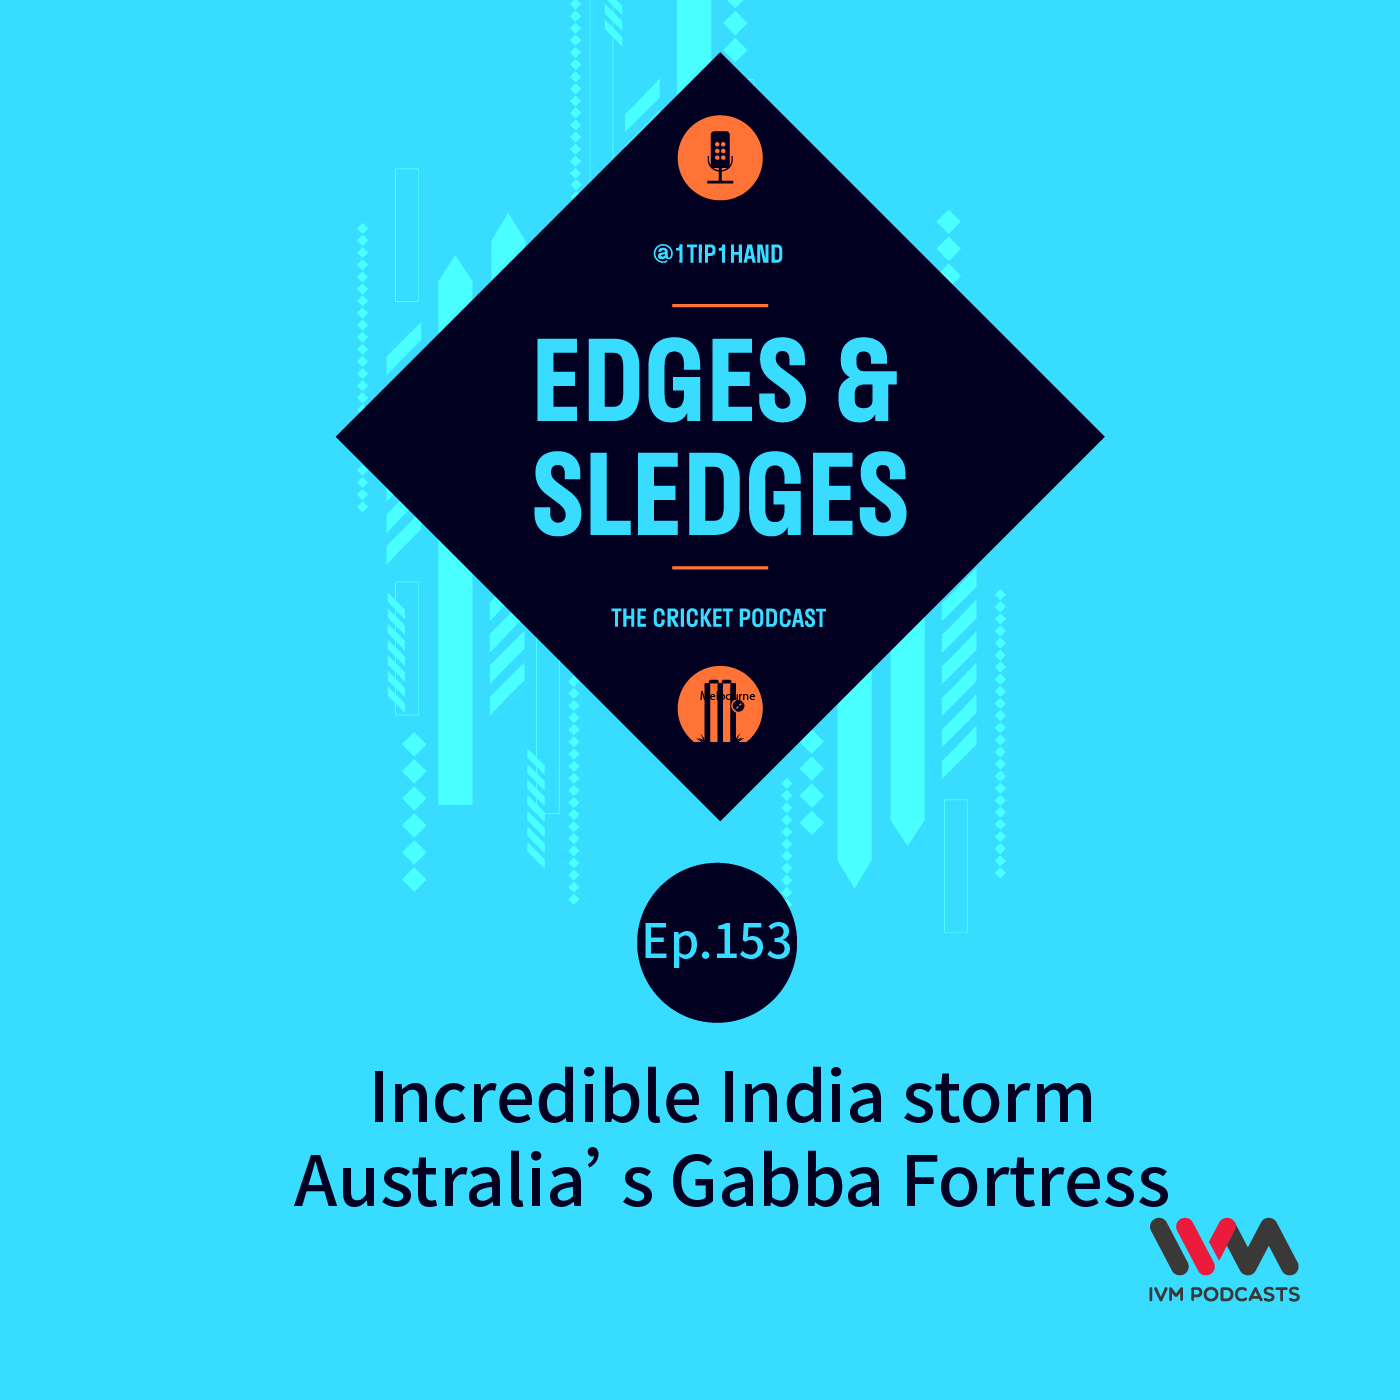 Ep.153: Incredible India storm Australia's Gabba Fortress